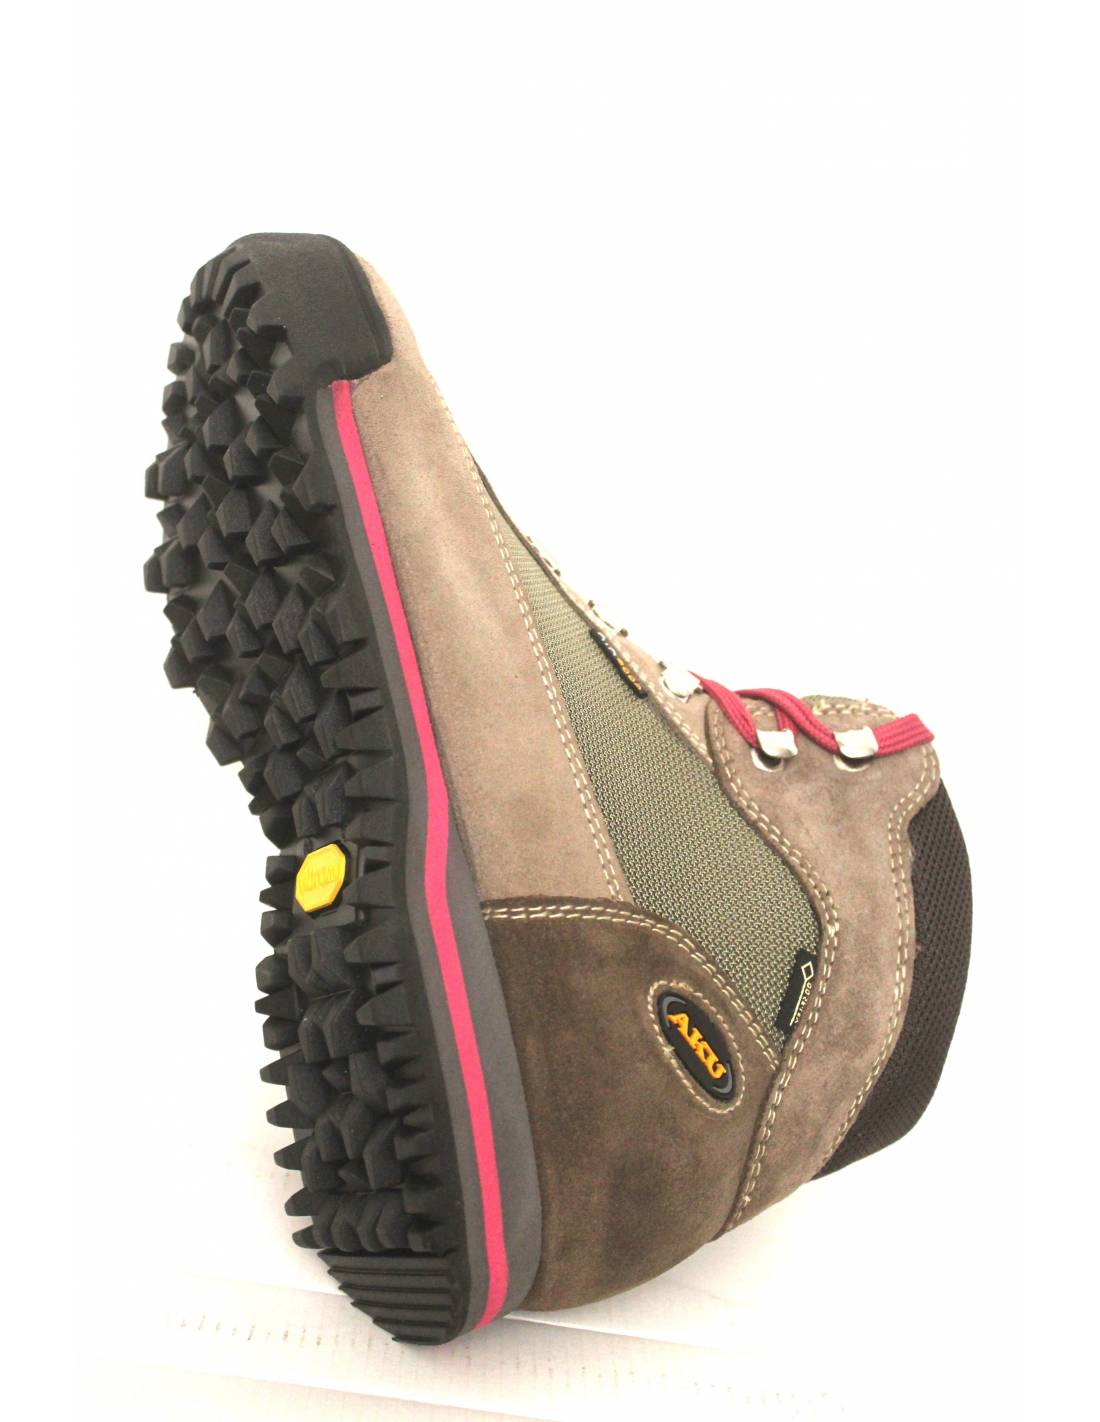 3f4ac028a9e8 ... scarpa treking donna aku 365.10 ultralight micro slope GTX. Previous